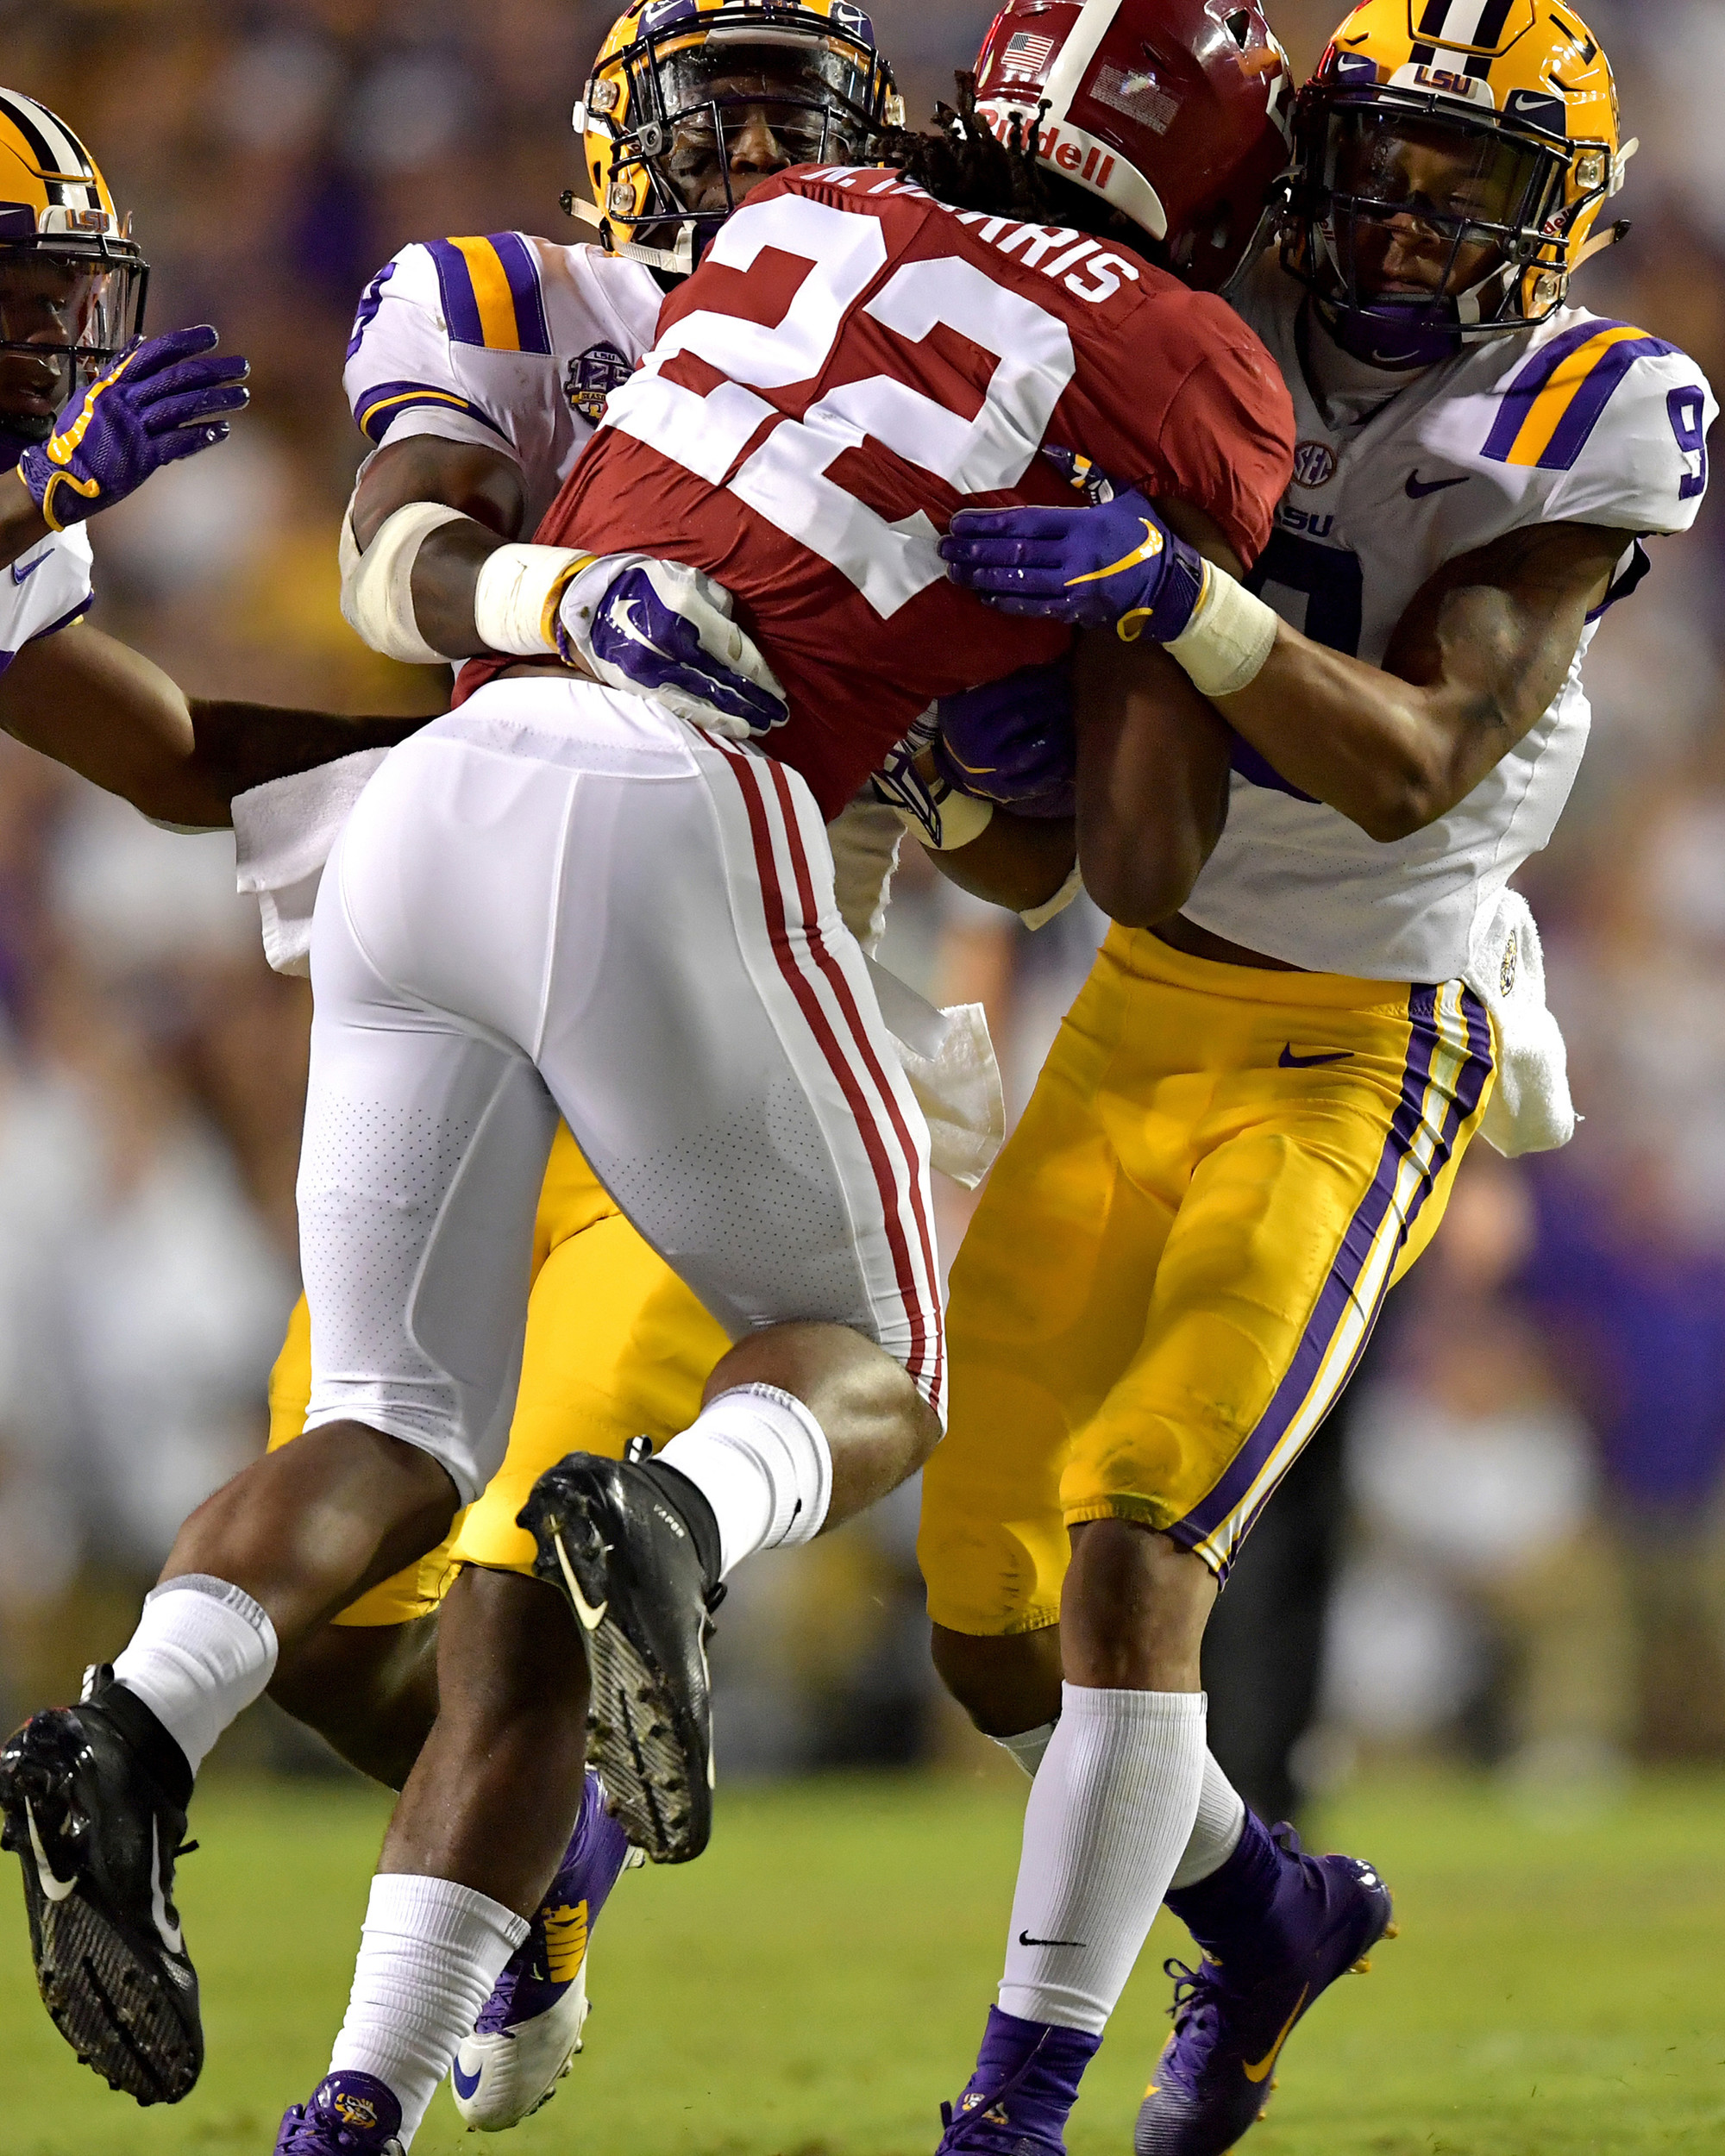 Alabama Crimson Tide running back Najee Harris (22) with a carry in the first half of an NCAA football game against the LSU Tigers Saturday, November 3, 2018, at Tiger Stadium in Baton Rouge, La. Alabama wins 29-0. (Photo by Lee Walls)